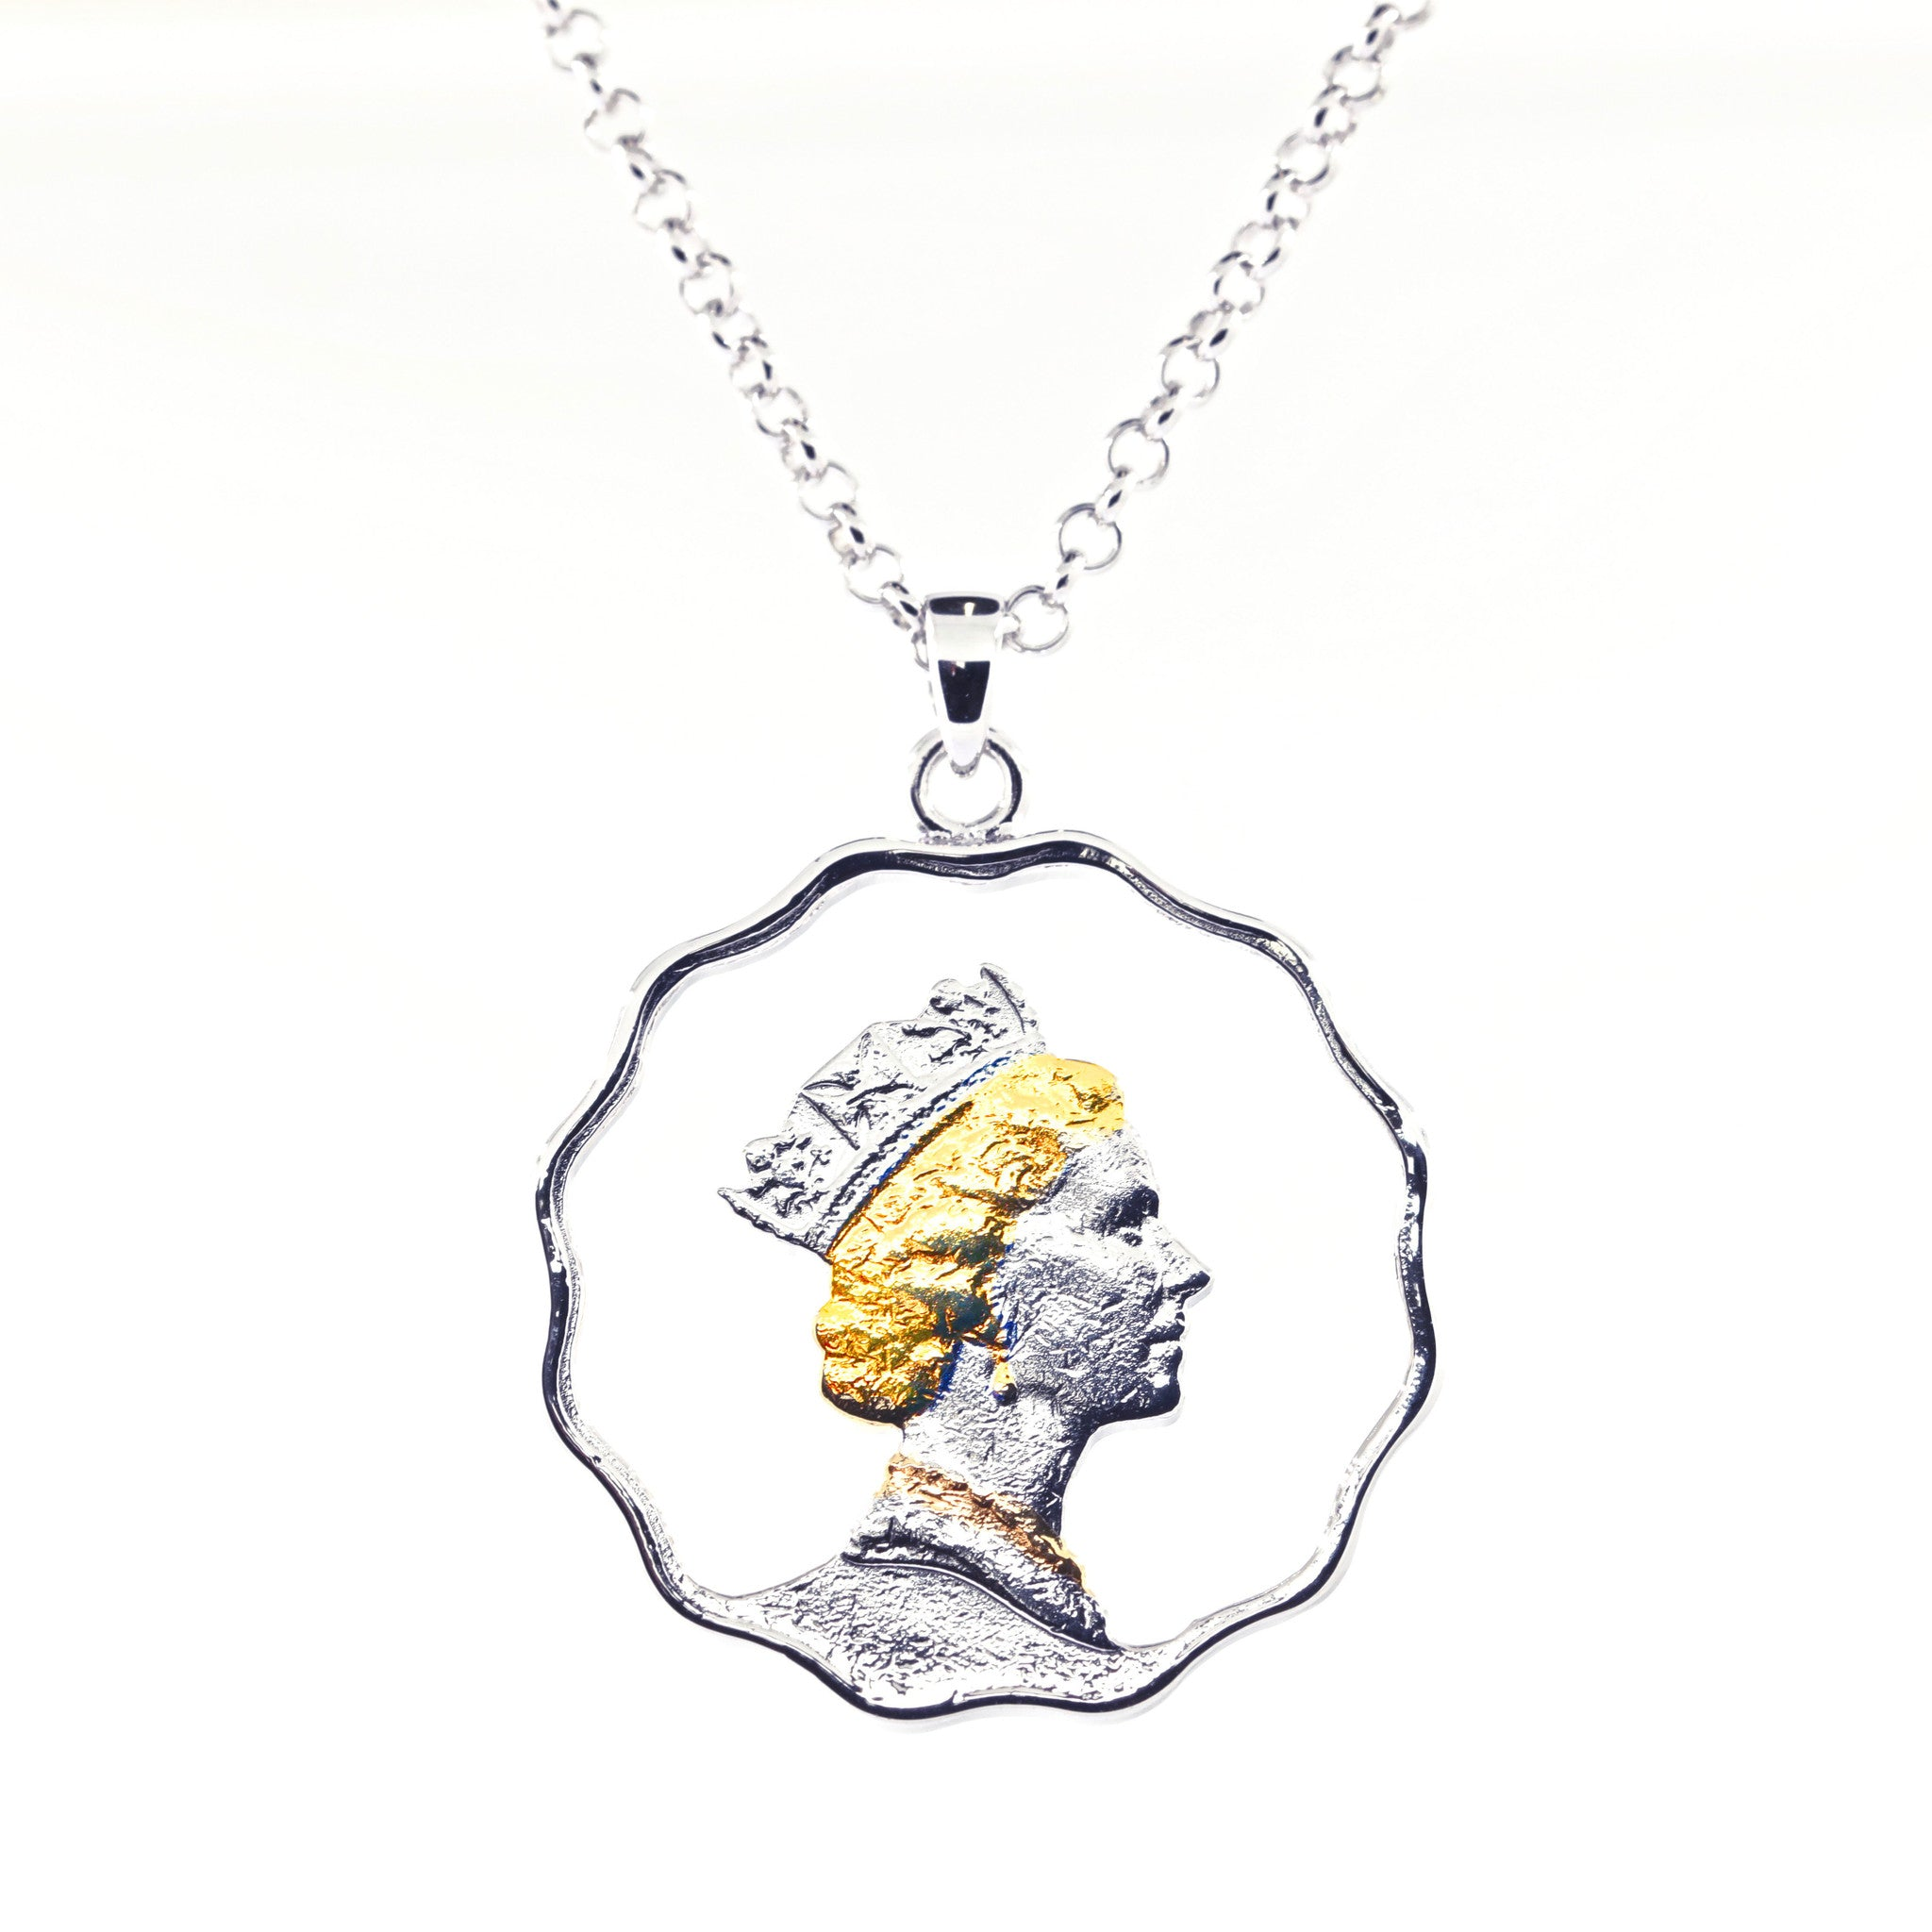 The 'Her Majesty II' Pendant / Charm (1985-1992)